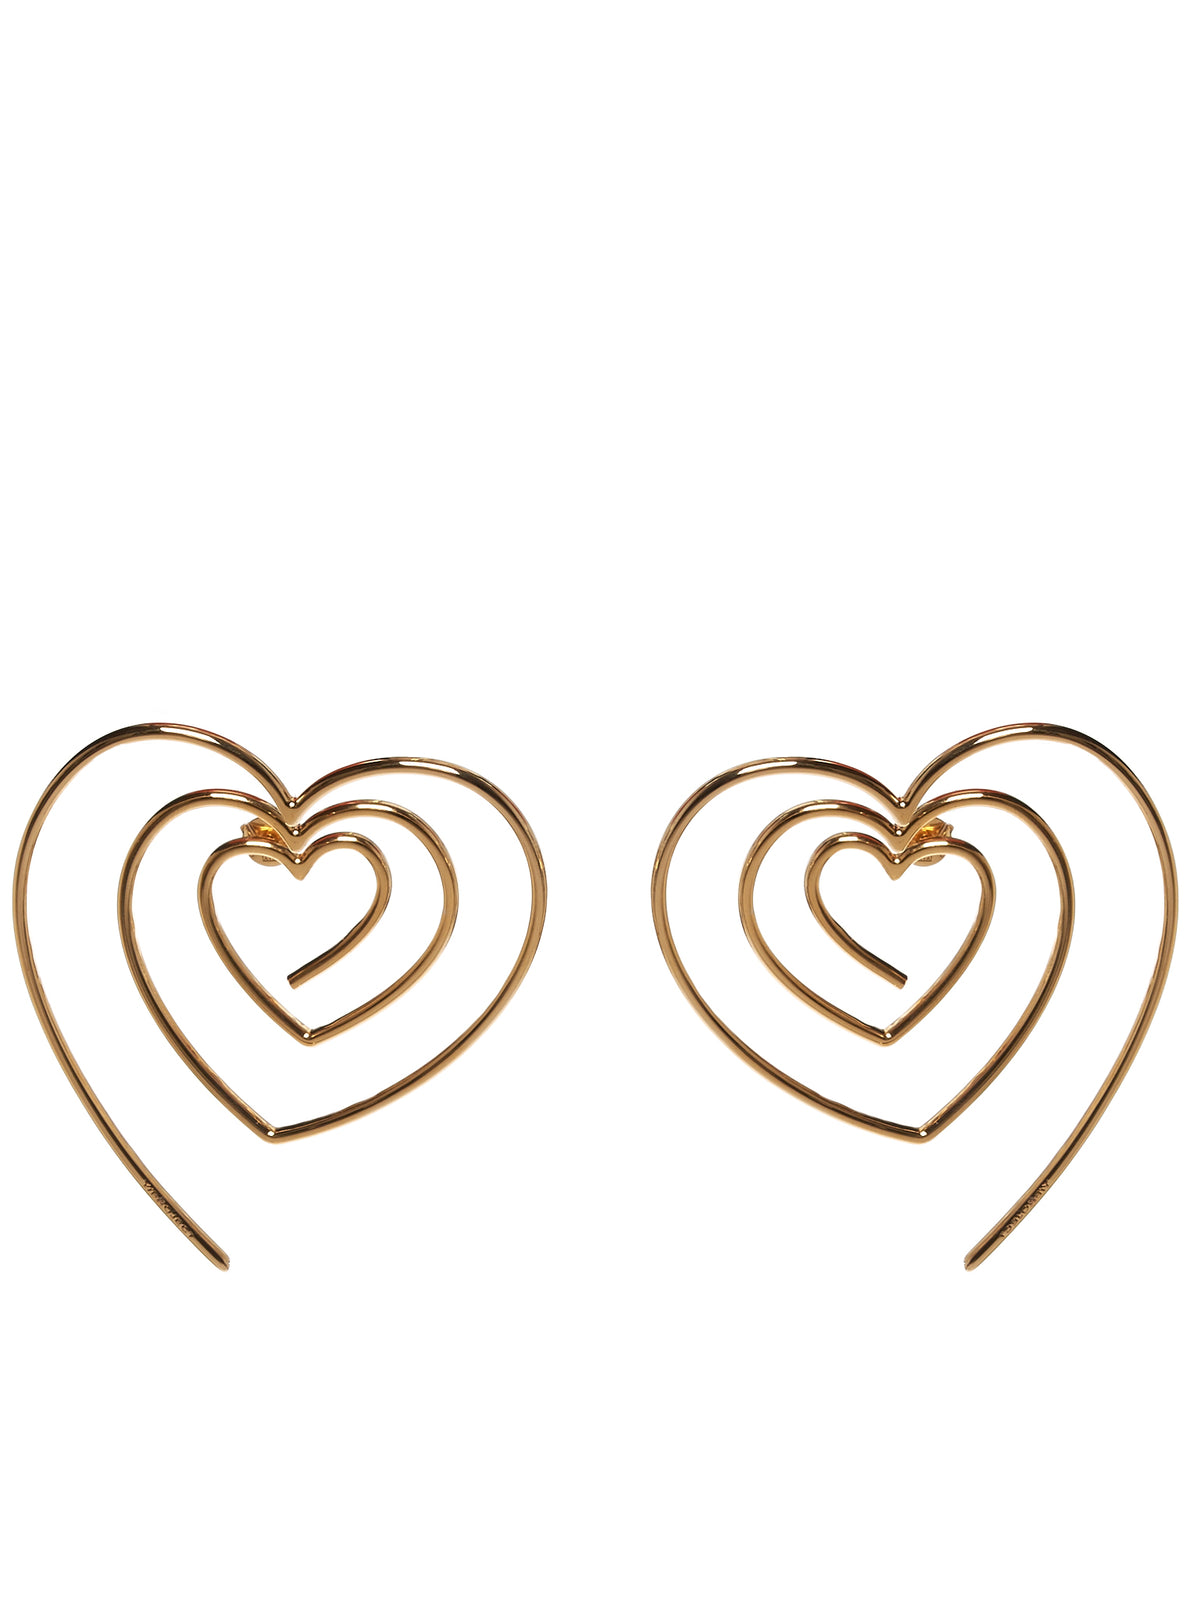 Spiral Heart Earrings (EARRING18-S18-C01-GOLD)